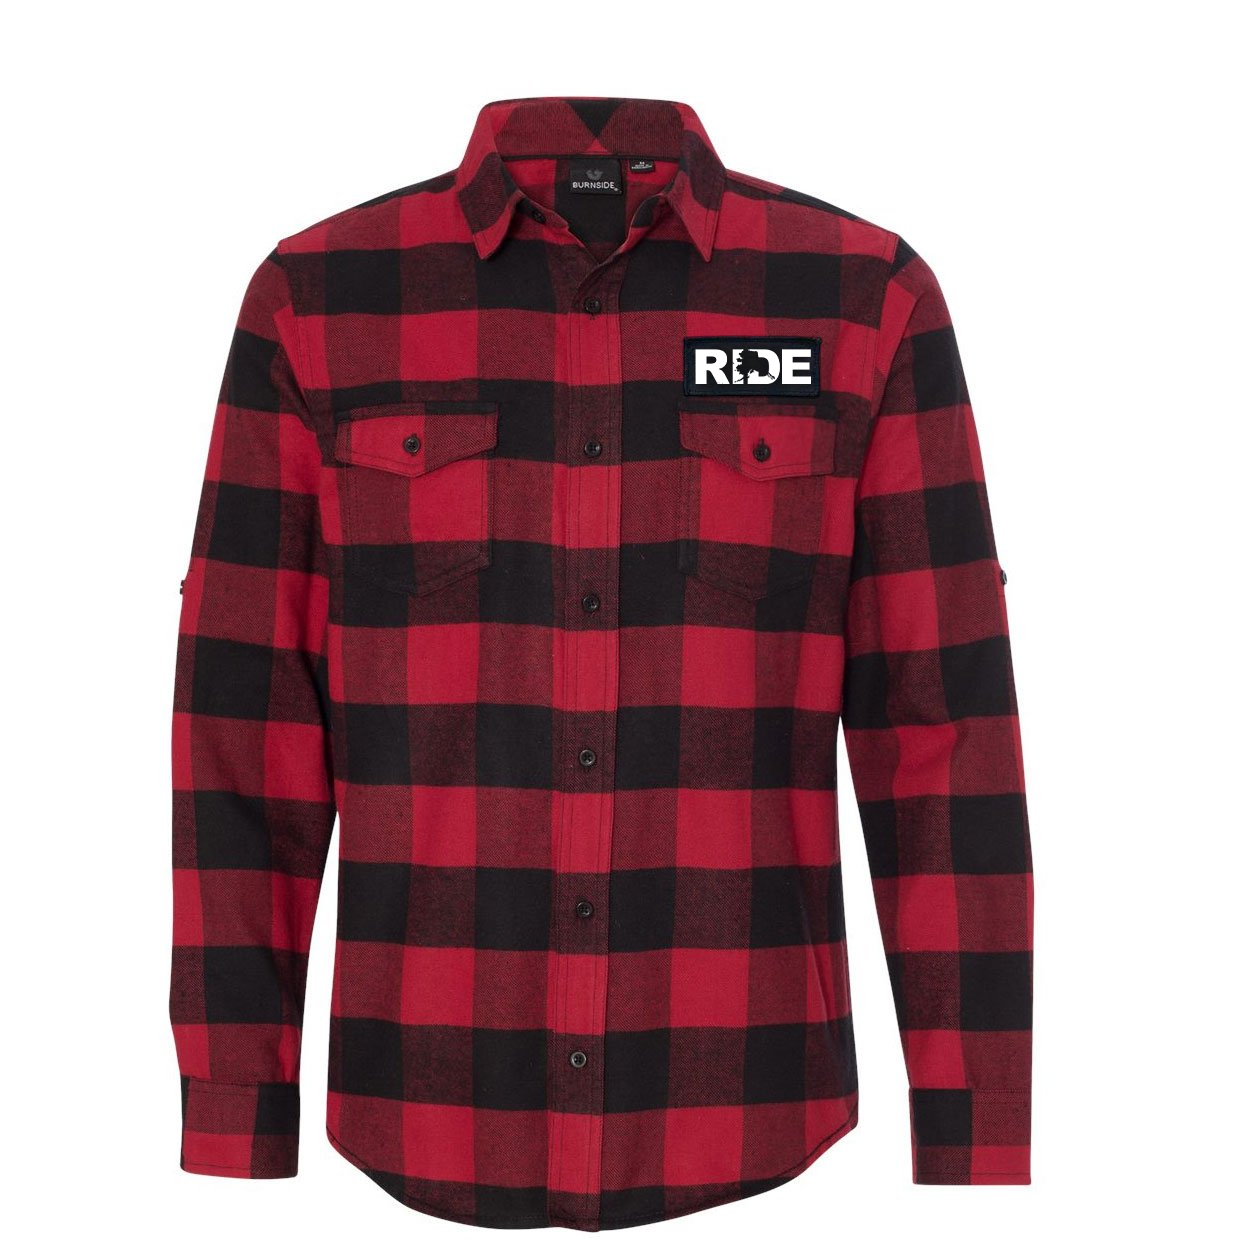 Ride Alaska Classic Unisex Long Sleeve Woven Patch Flannel Shirt Red/Black Buffalo (White Logo)